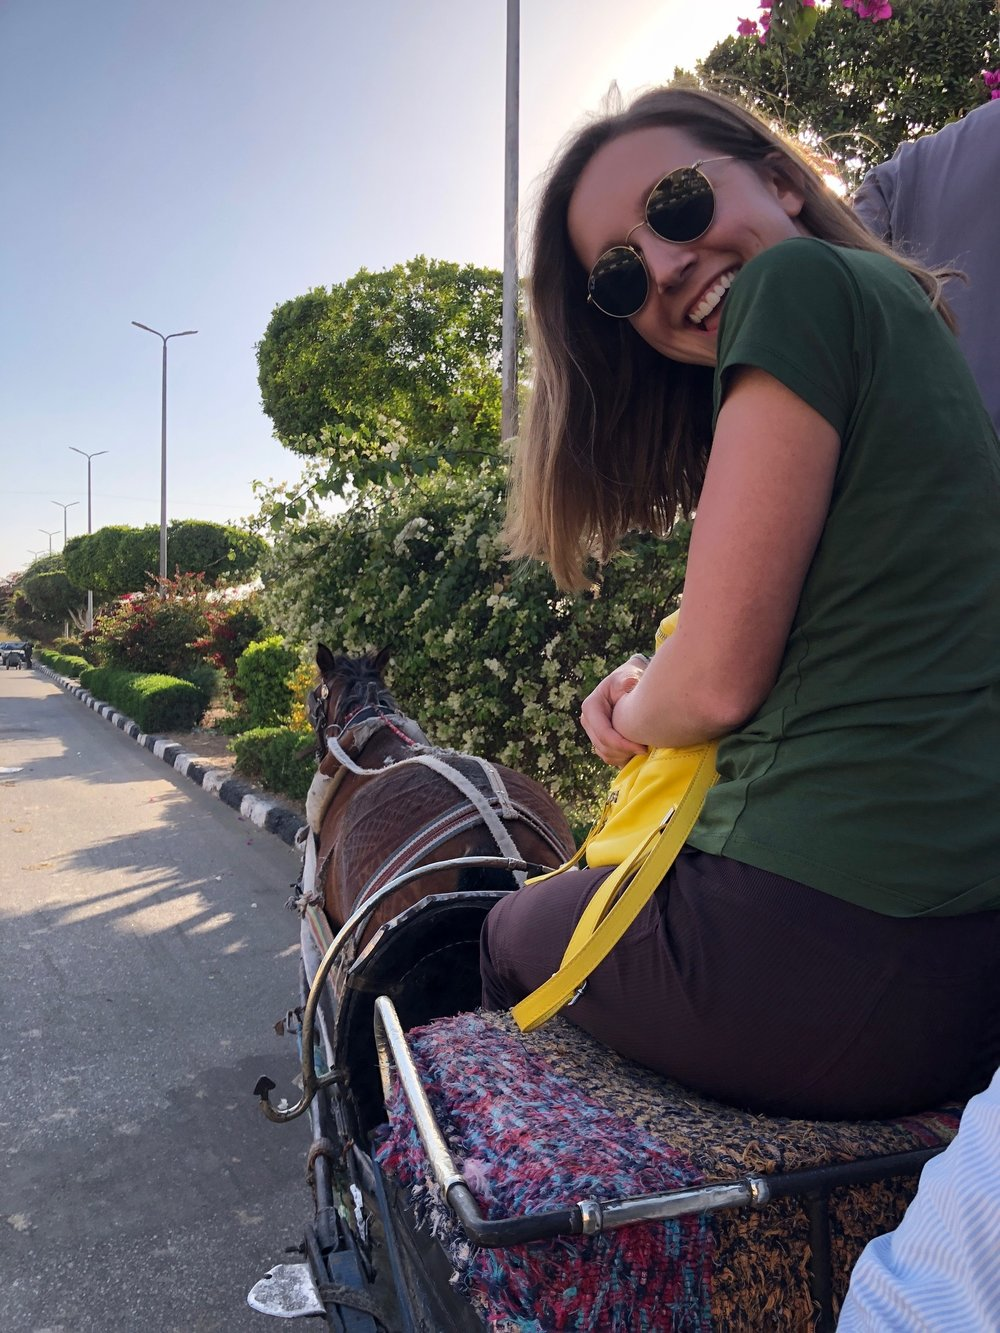 After Karnak, we rode another horse and buggy to get to a cafe where we ate dinner and waited for the night train. Photo credit: Arguin, 2019